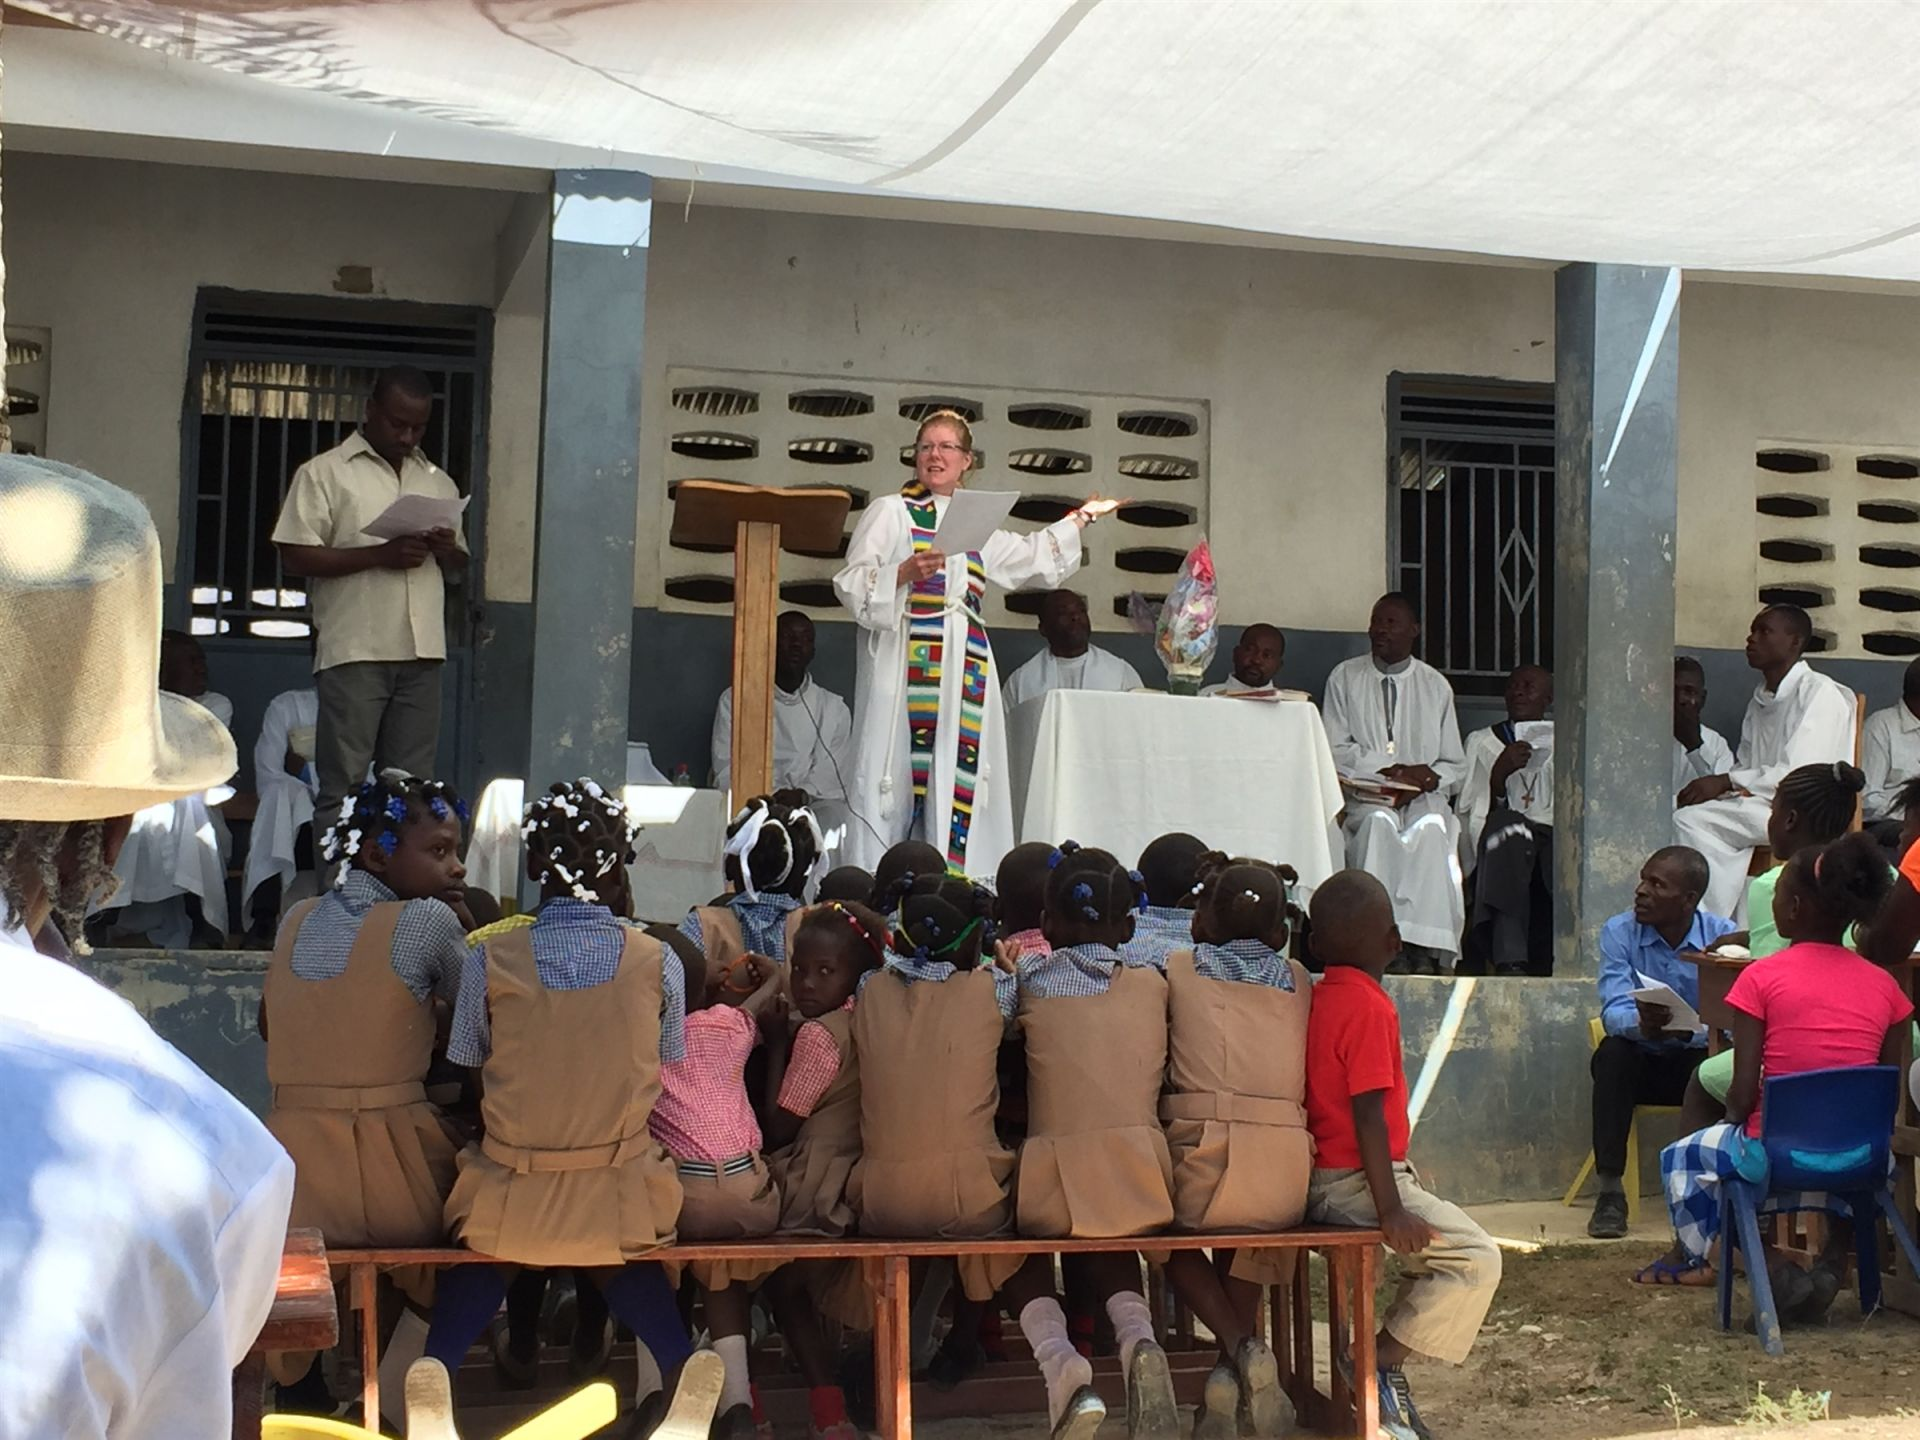 International partnership with Christ Roi in Civol, Haiti - St. Andrew's Episcopal School